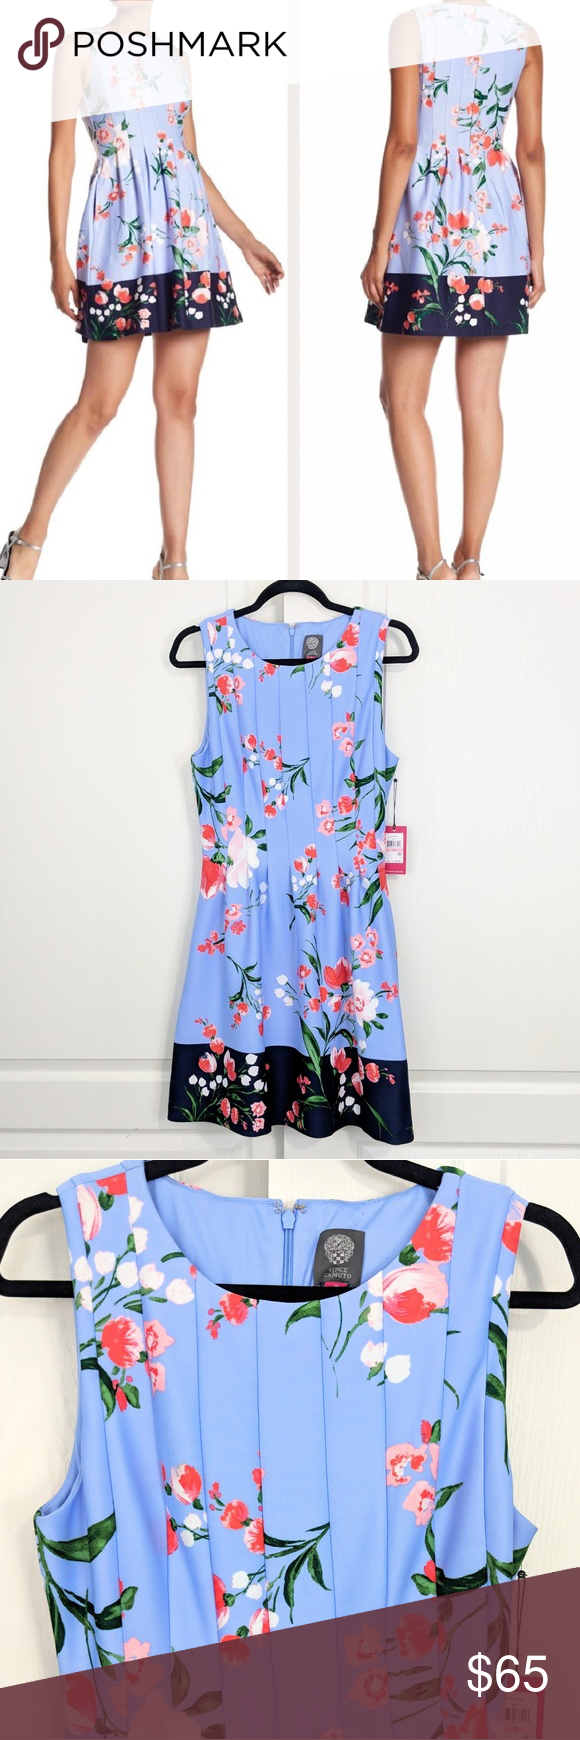 Nwt Vince Camuto Floral Dress 10 Vince Camuto Floral Dress Floral Blue Dress Floral Dress [ 1740 x 580 Pixel ]